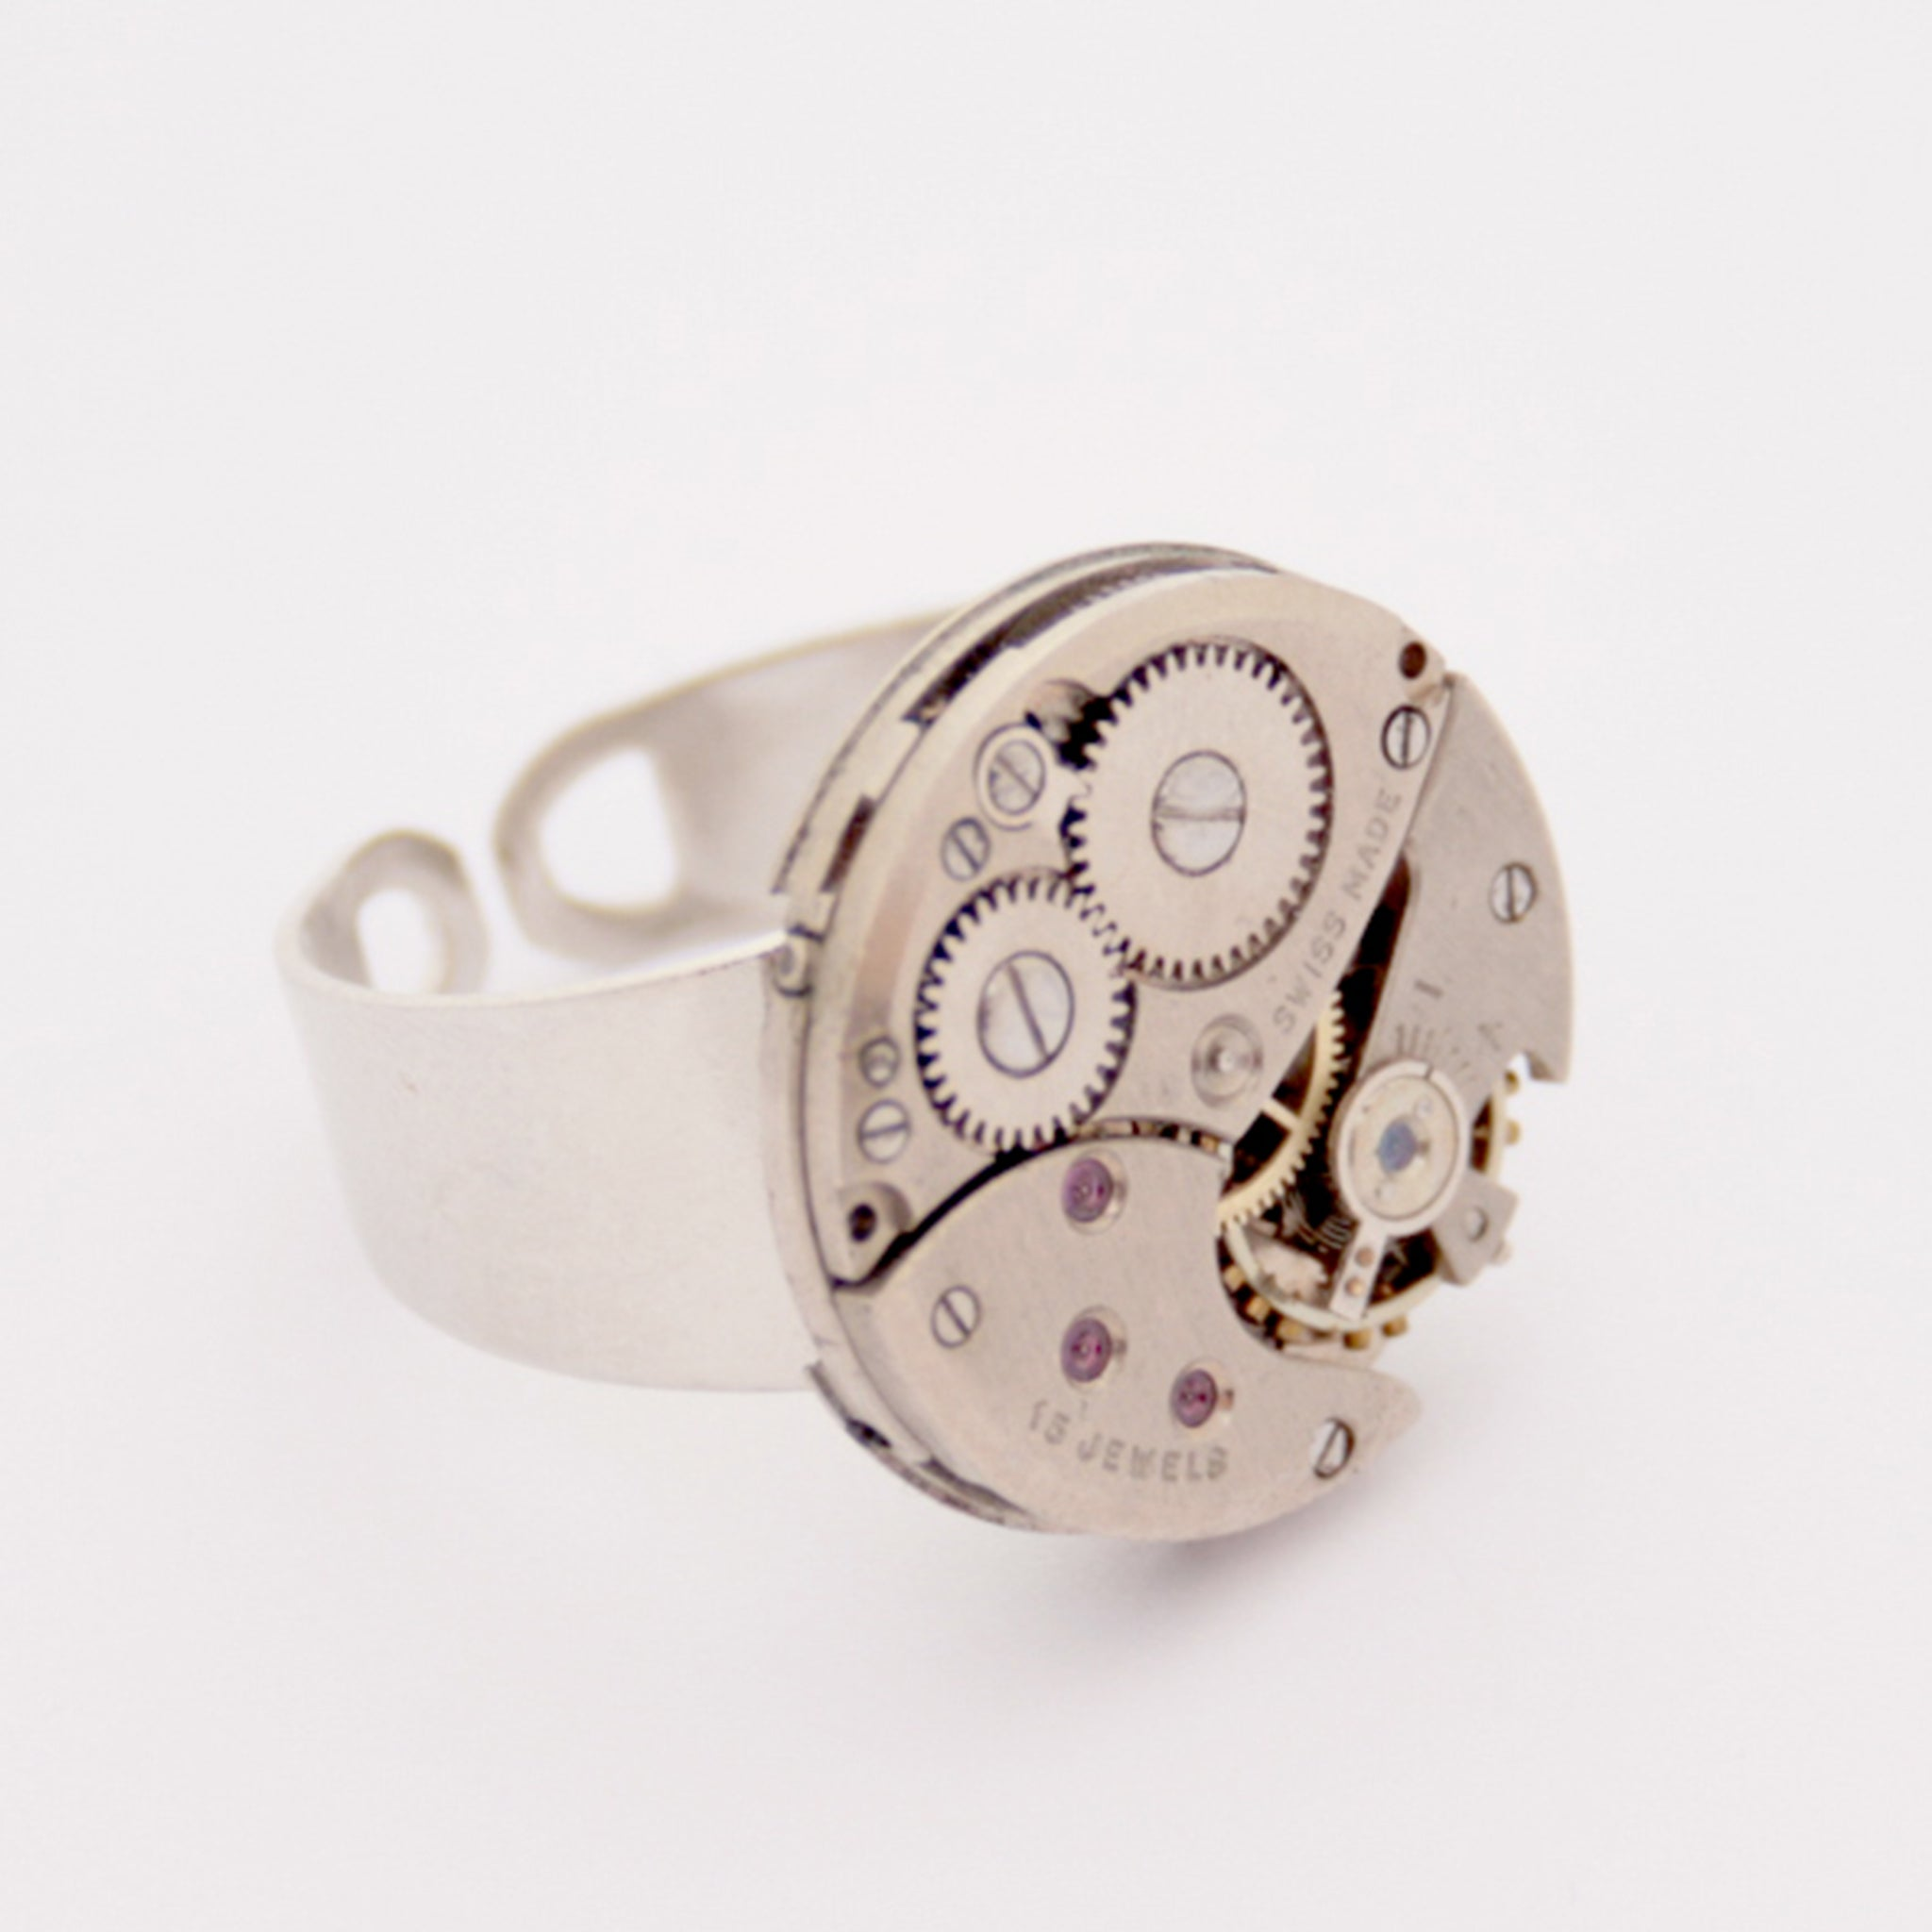 steampunk ring made of a real Swiss watch mechanism